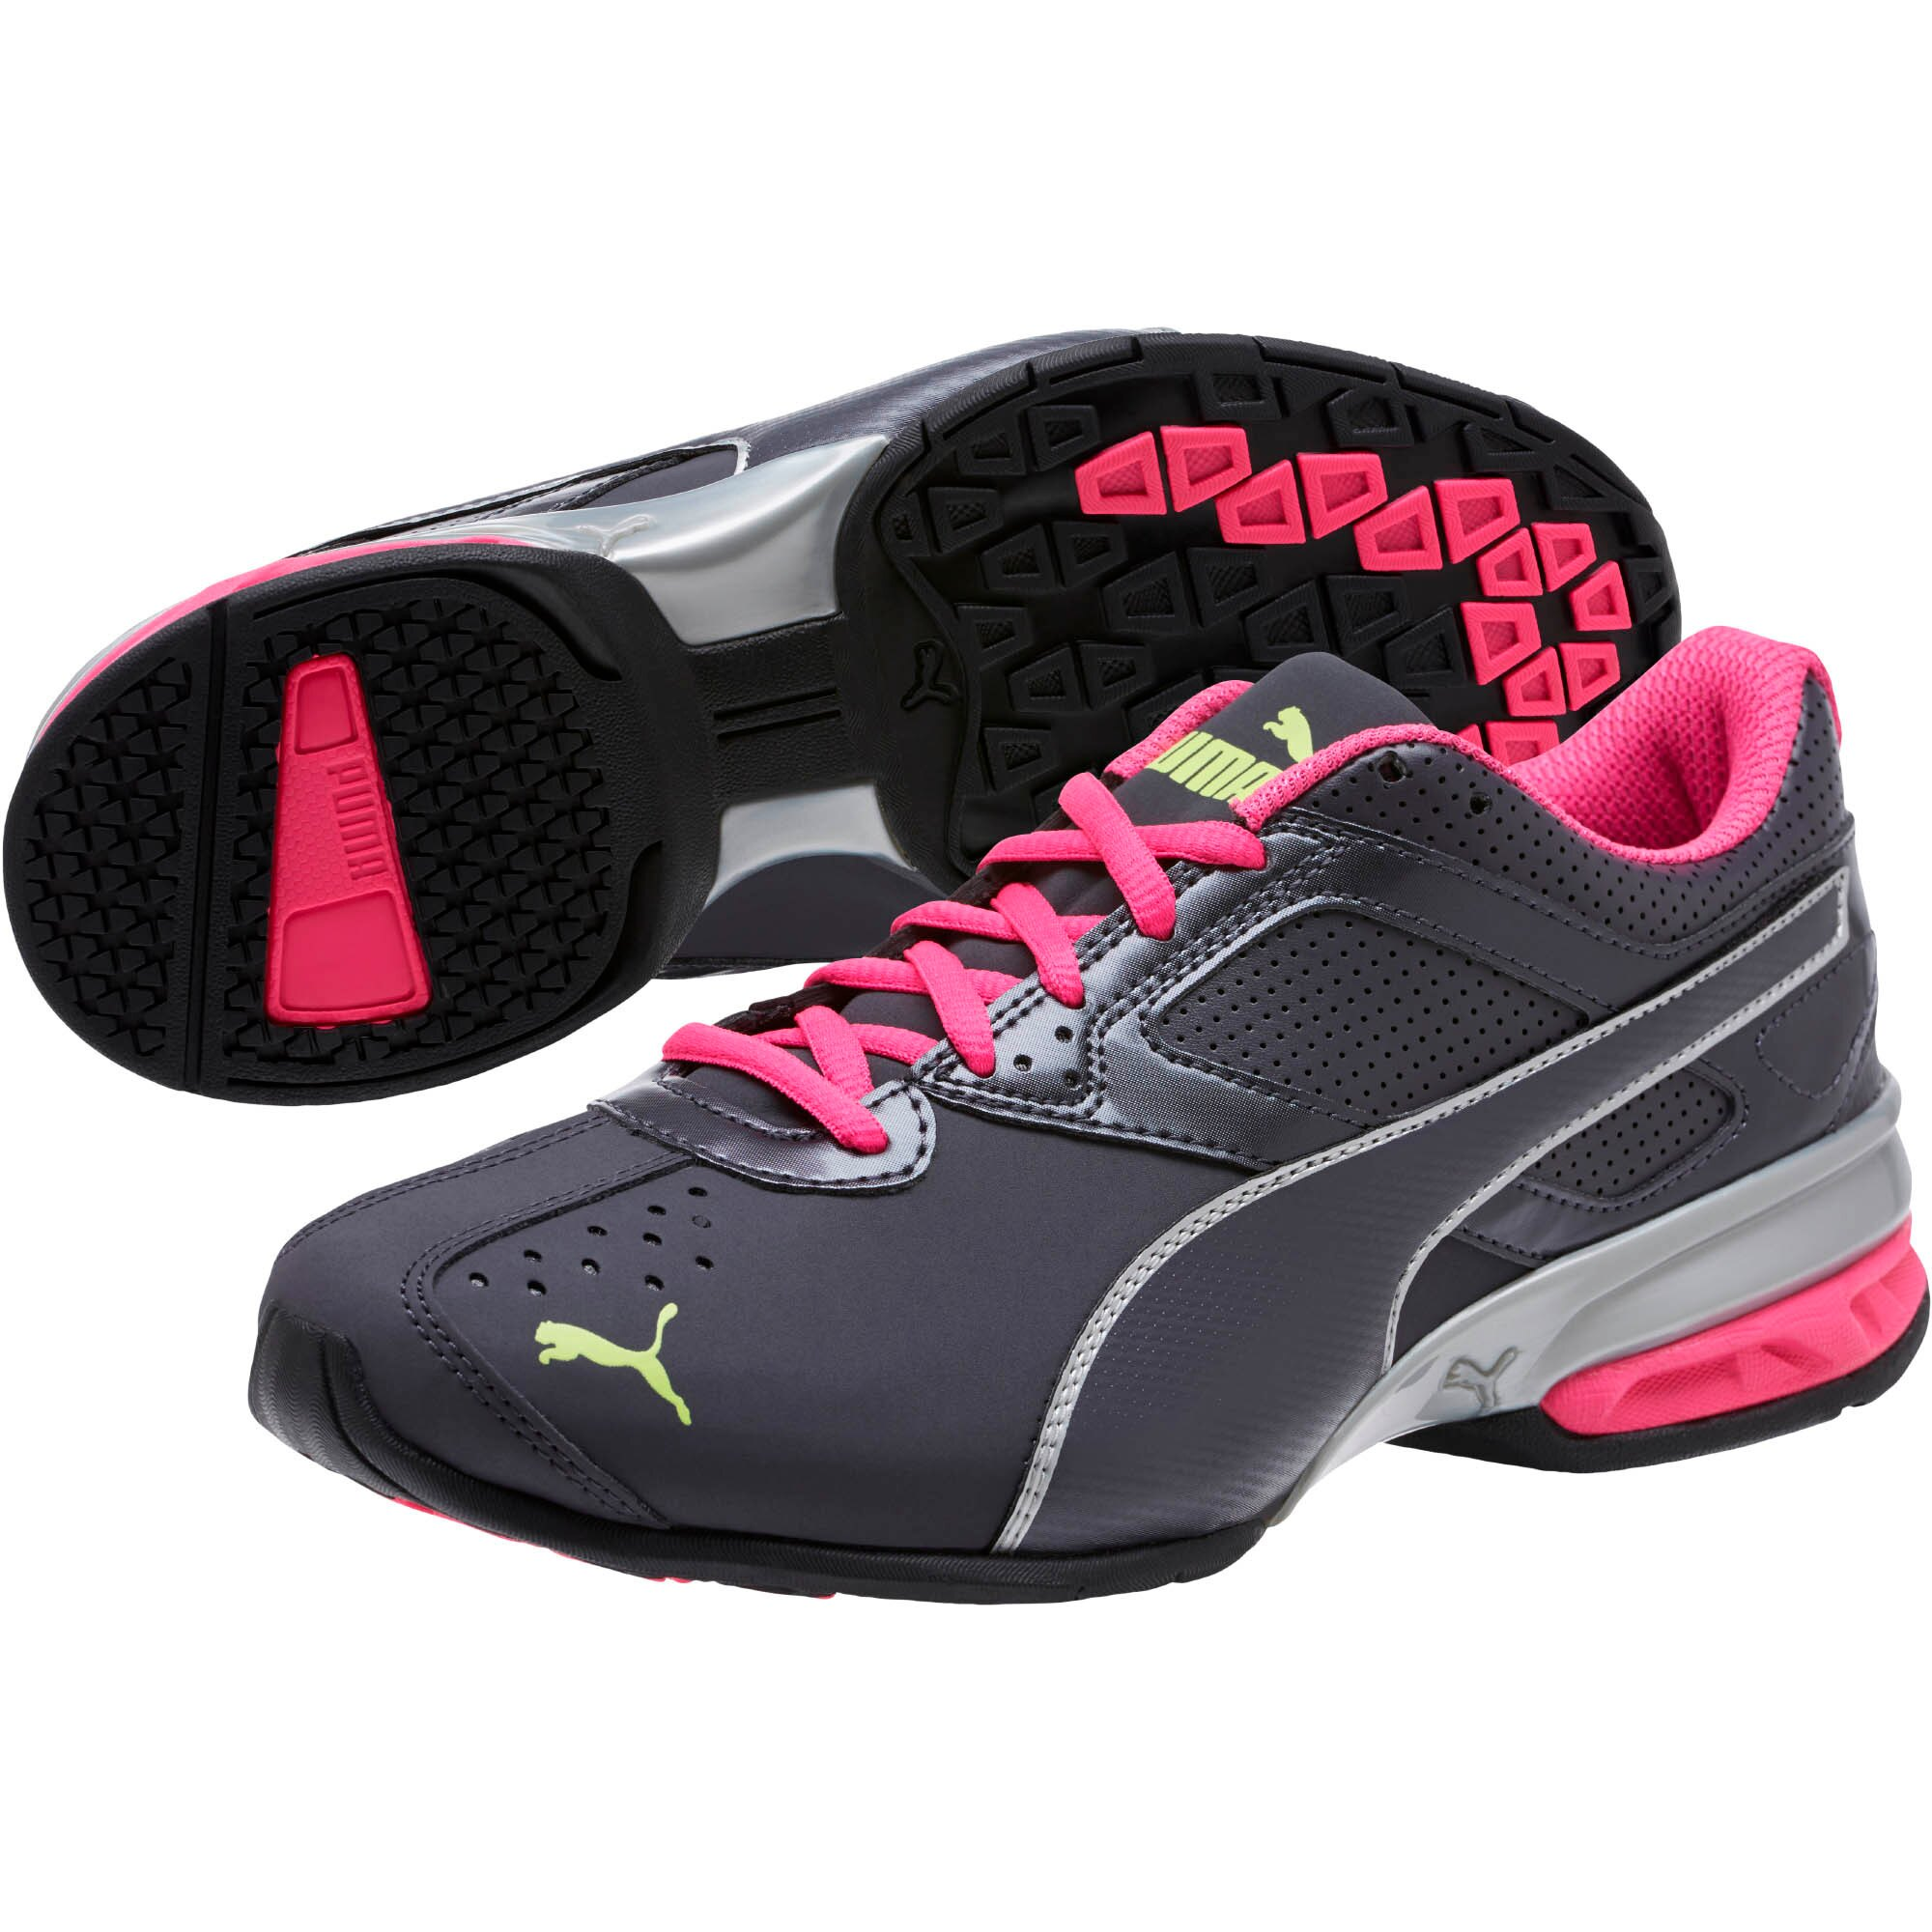 c93fa655dc78b7 Official Puma Store  PUMA Tazon 6 FM Women s Sneakers